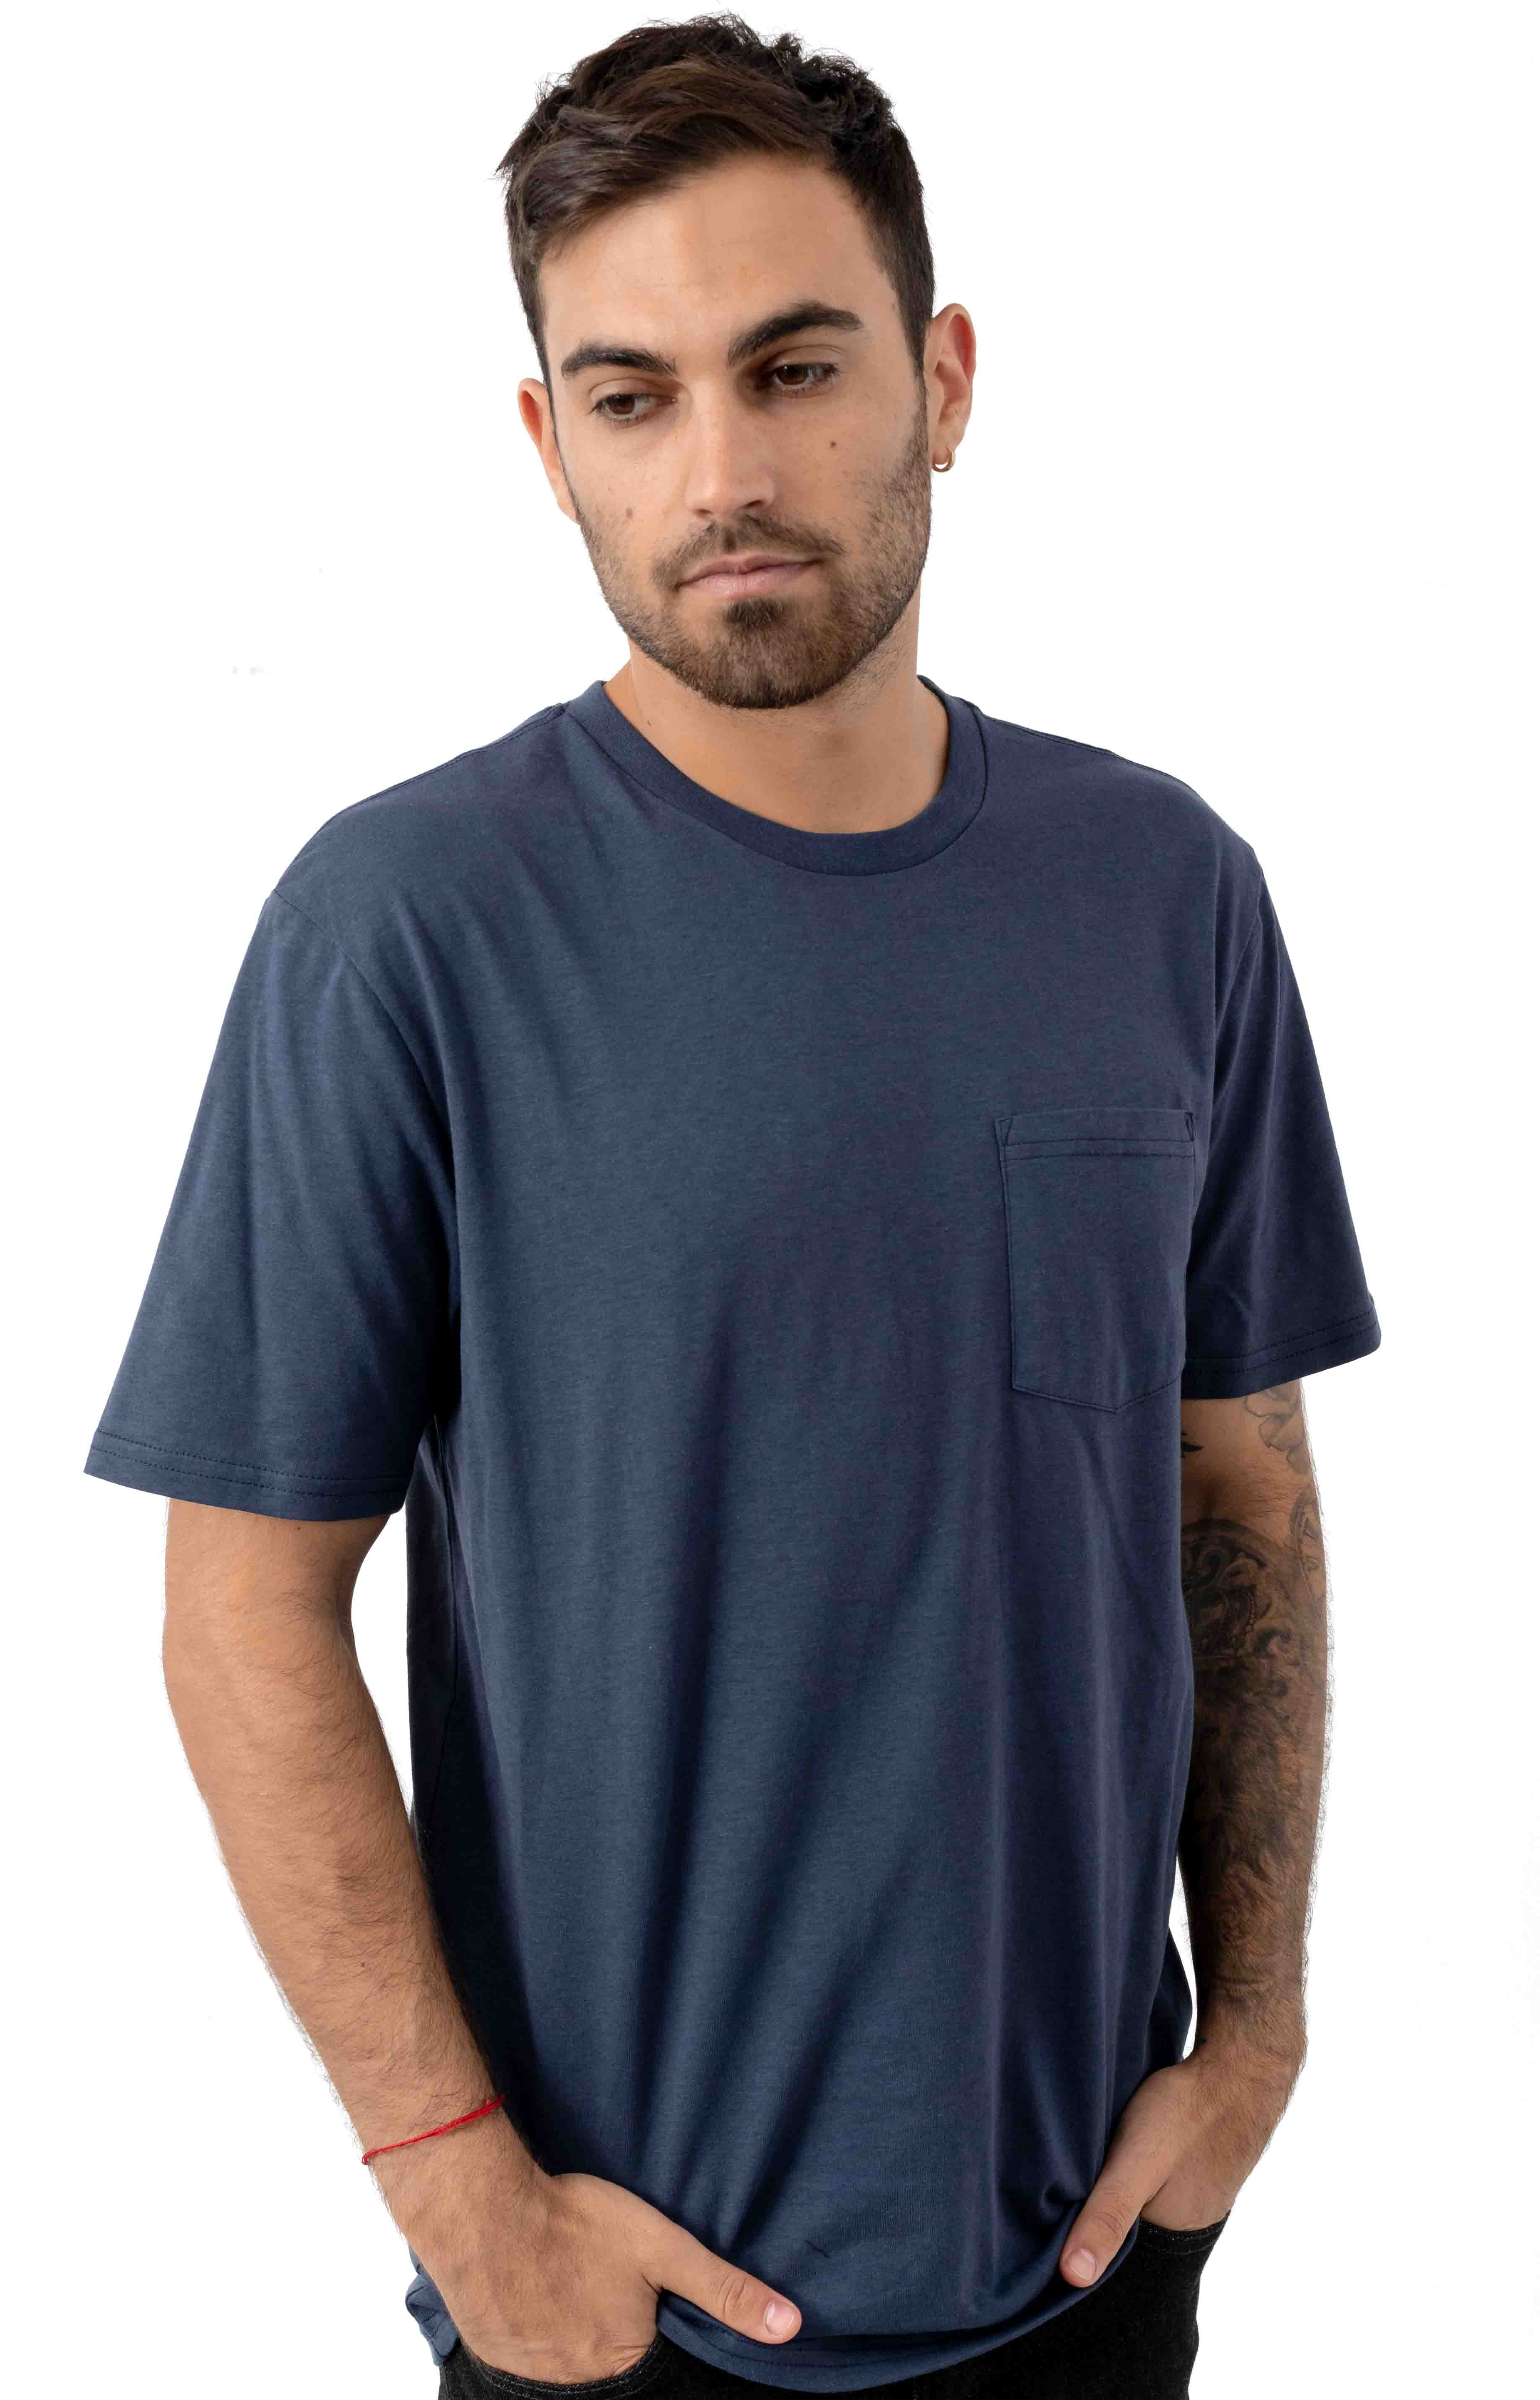 Basic Pocket T-Shirt - Washed Navy